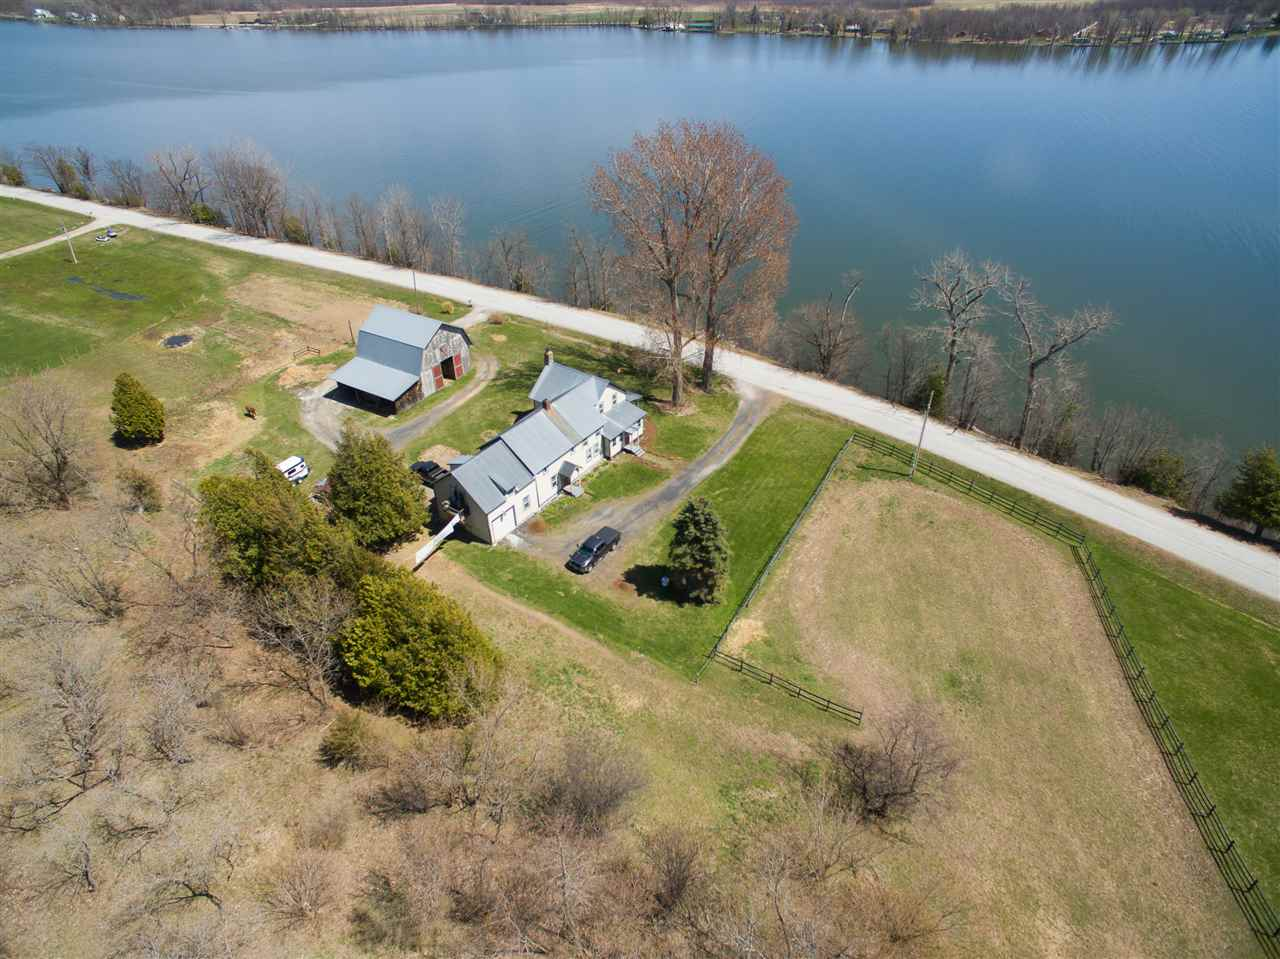 104 POOR FARM Road, Alburgh, VT 05440